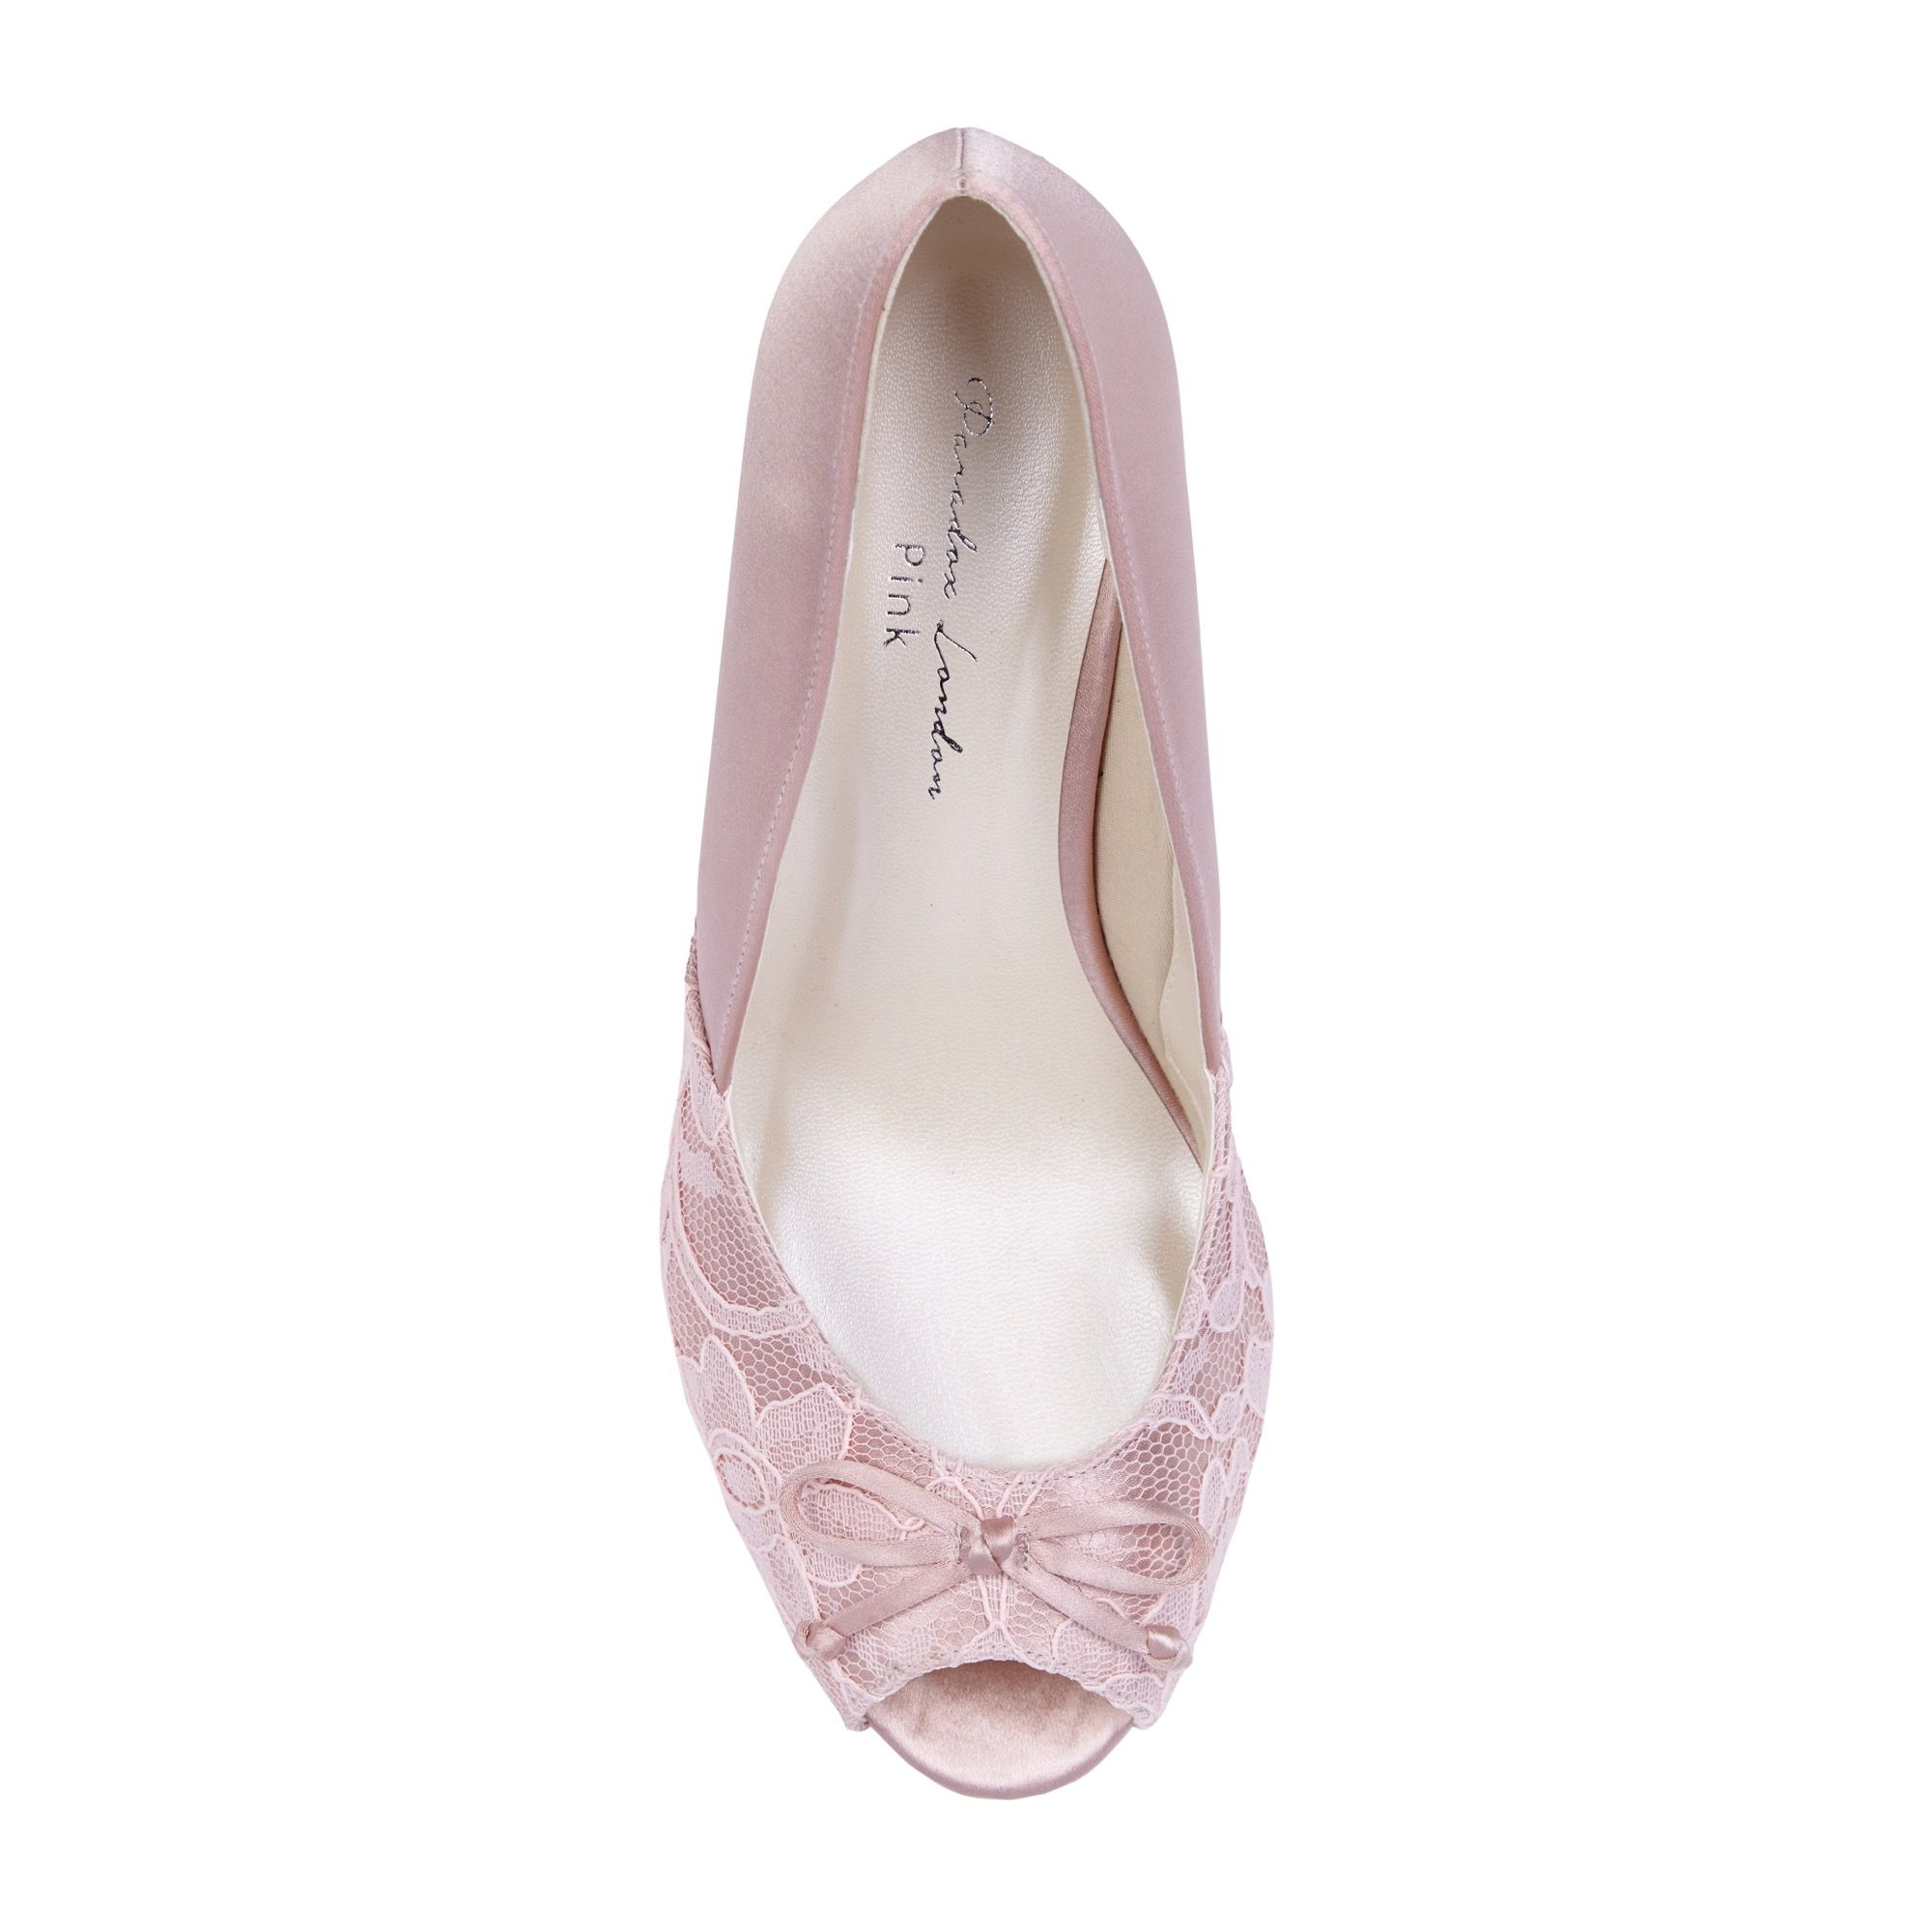 a760748ed09 Paradox London Pink Dariela Wide Fit Mid Heel Peep Toe Shoes - House Of  Fraser